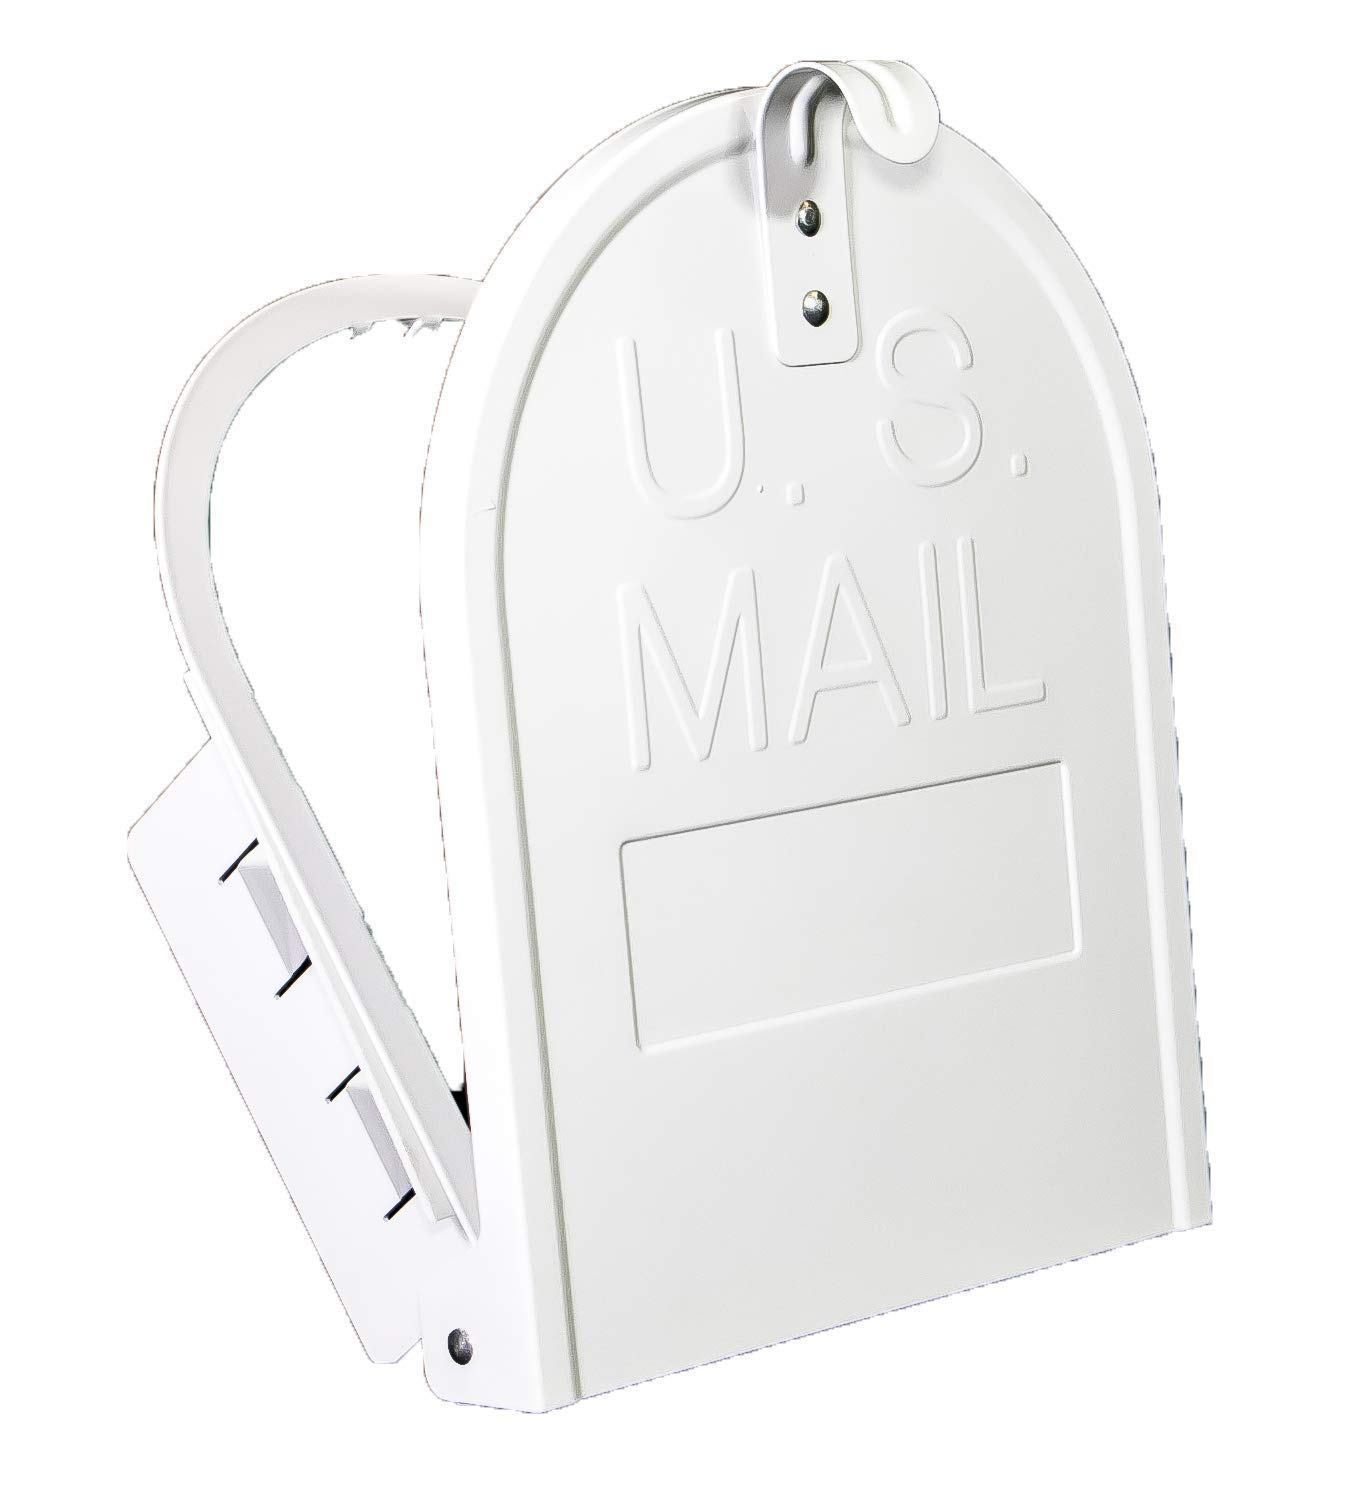 11 Inch (Width) by 14 Inch (Height) RetroFit ''Snap-In'' Mailbox Door Replacement - White by Bayshore Mailbox Company